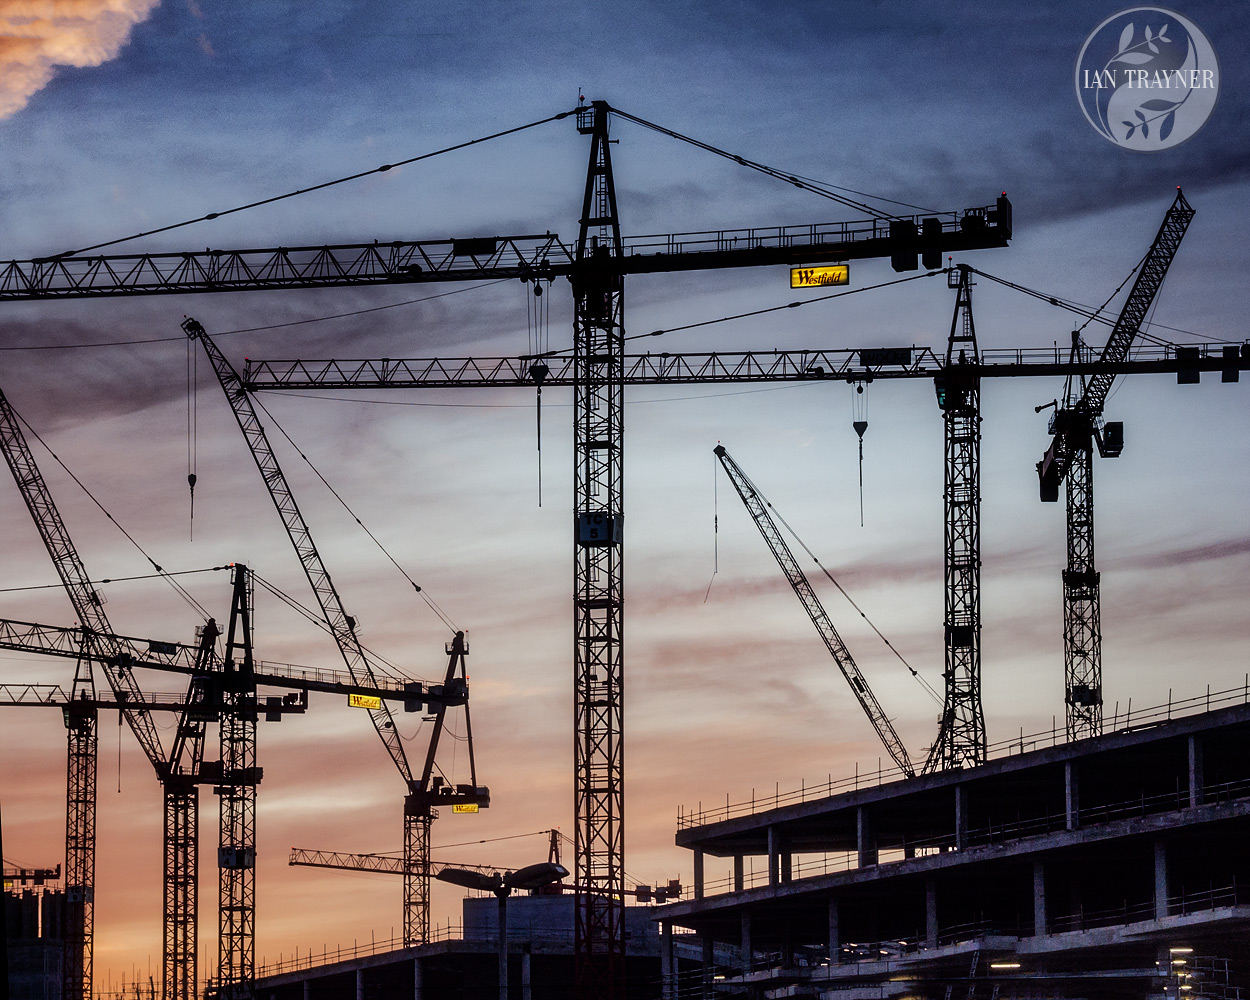 """Dancing cranes"". Photo by Ian Trayner during construction of the Westield London shopping centre. 2007."